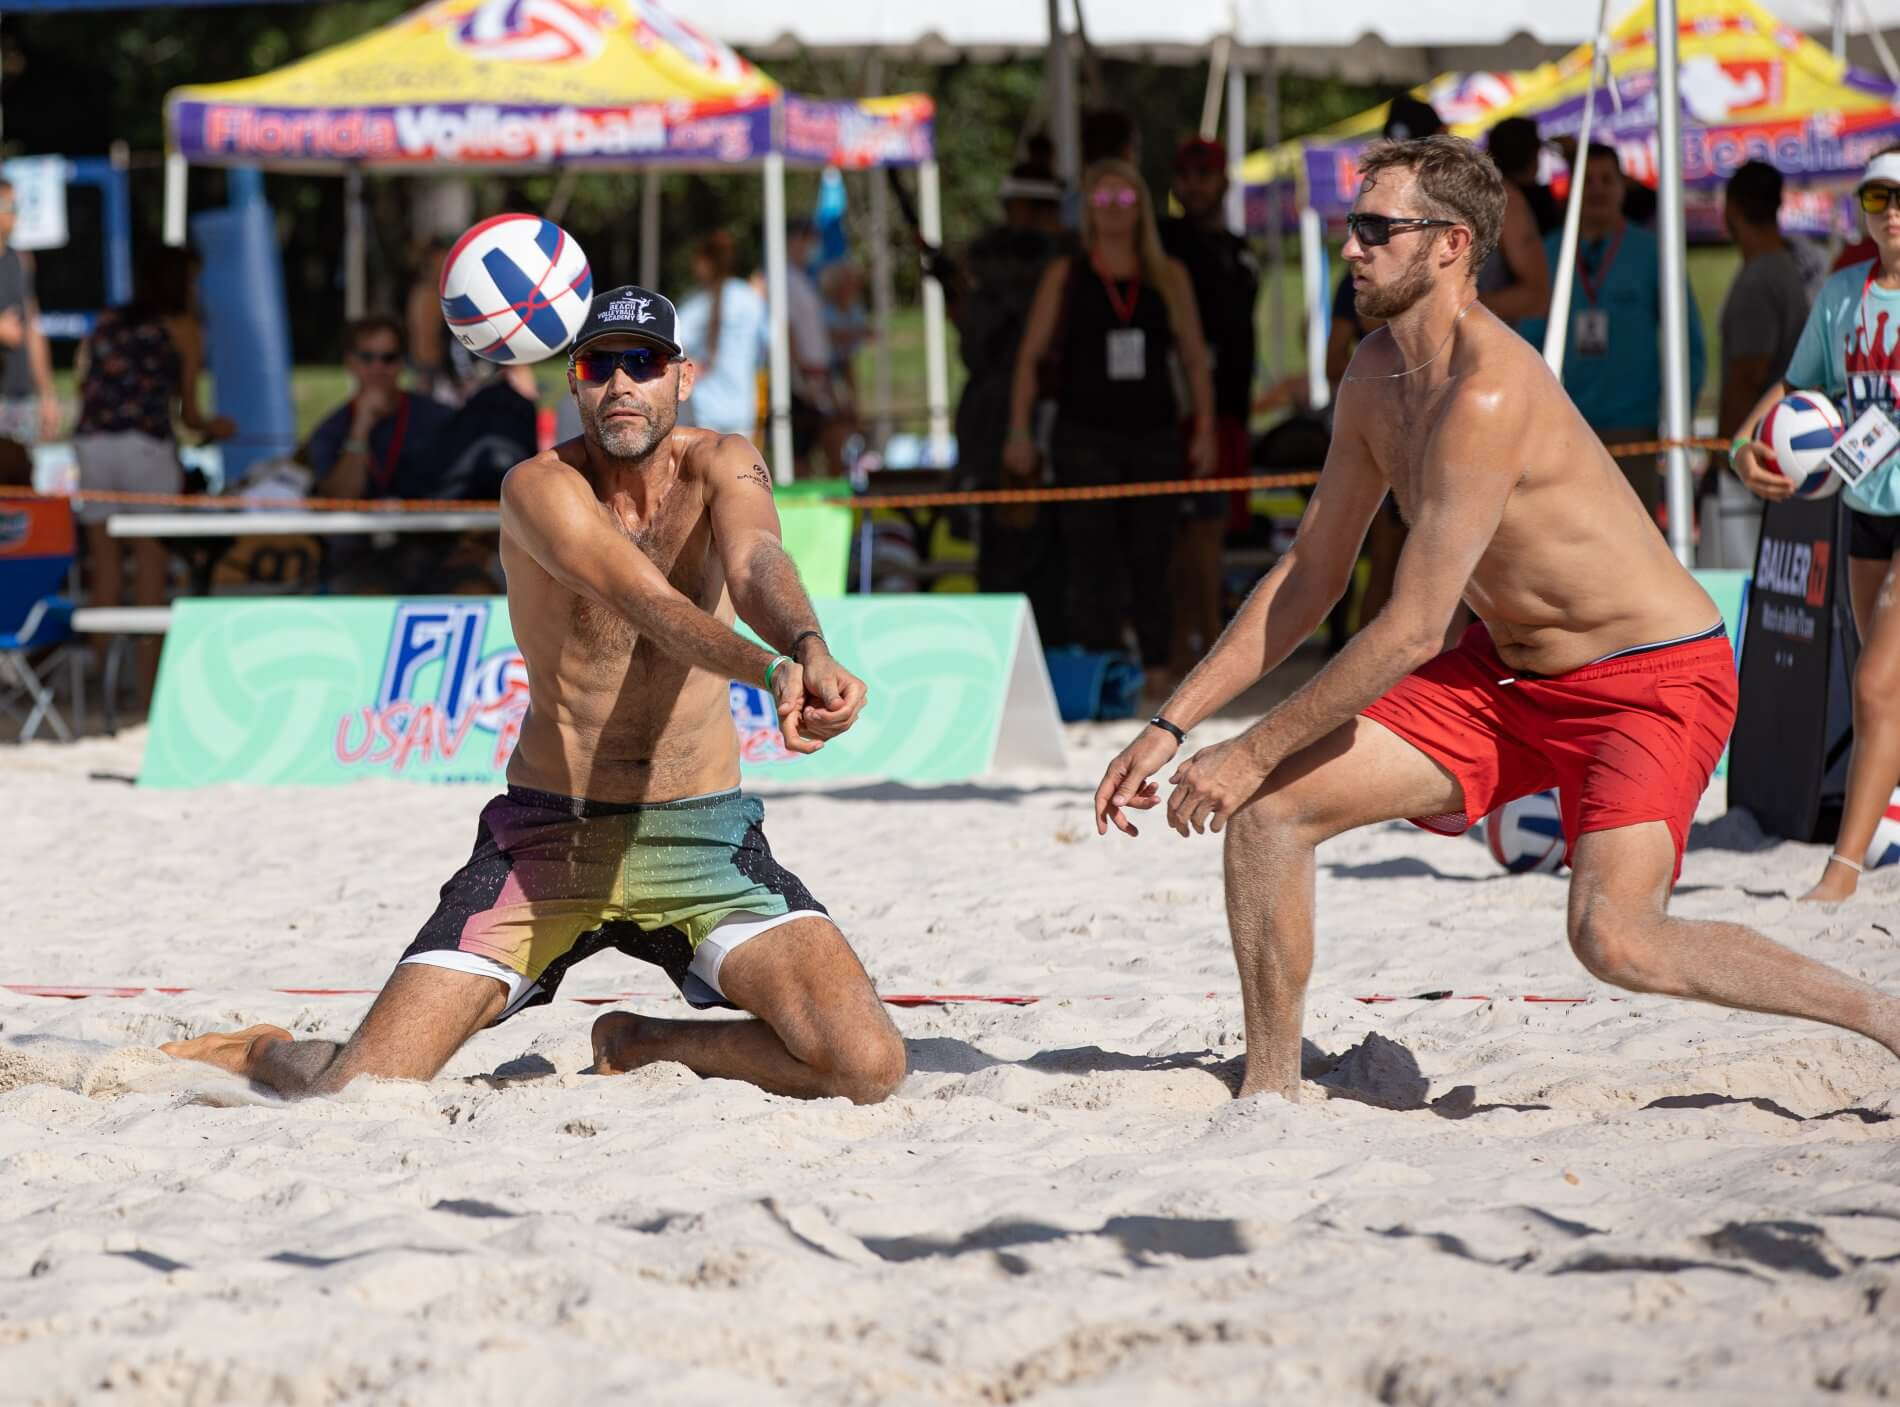 two professional beach volleyball players go for a ball